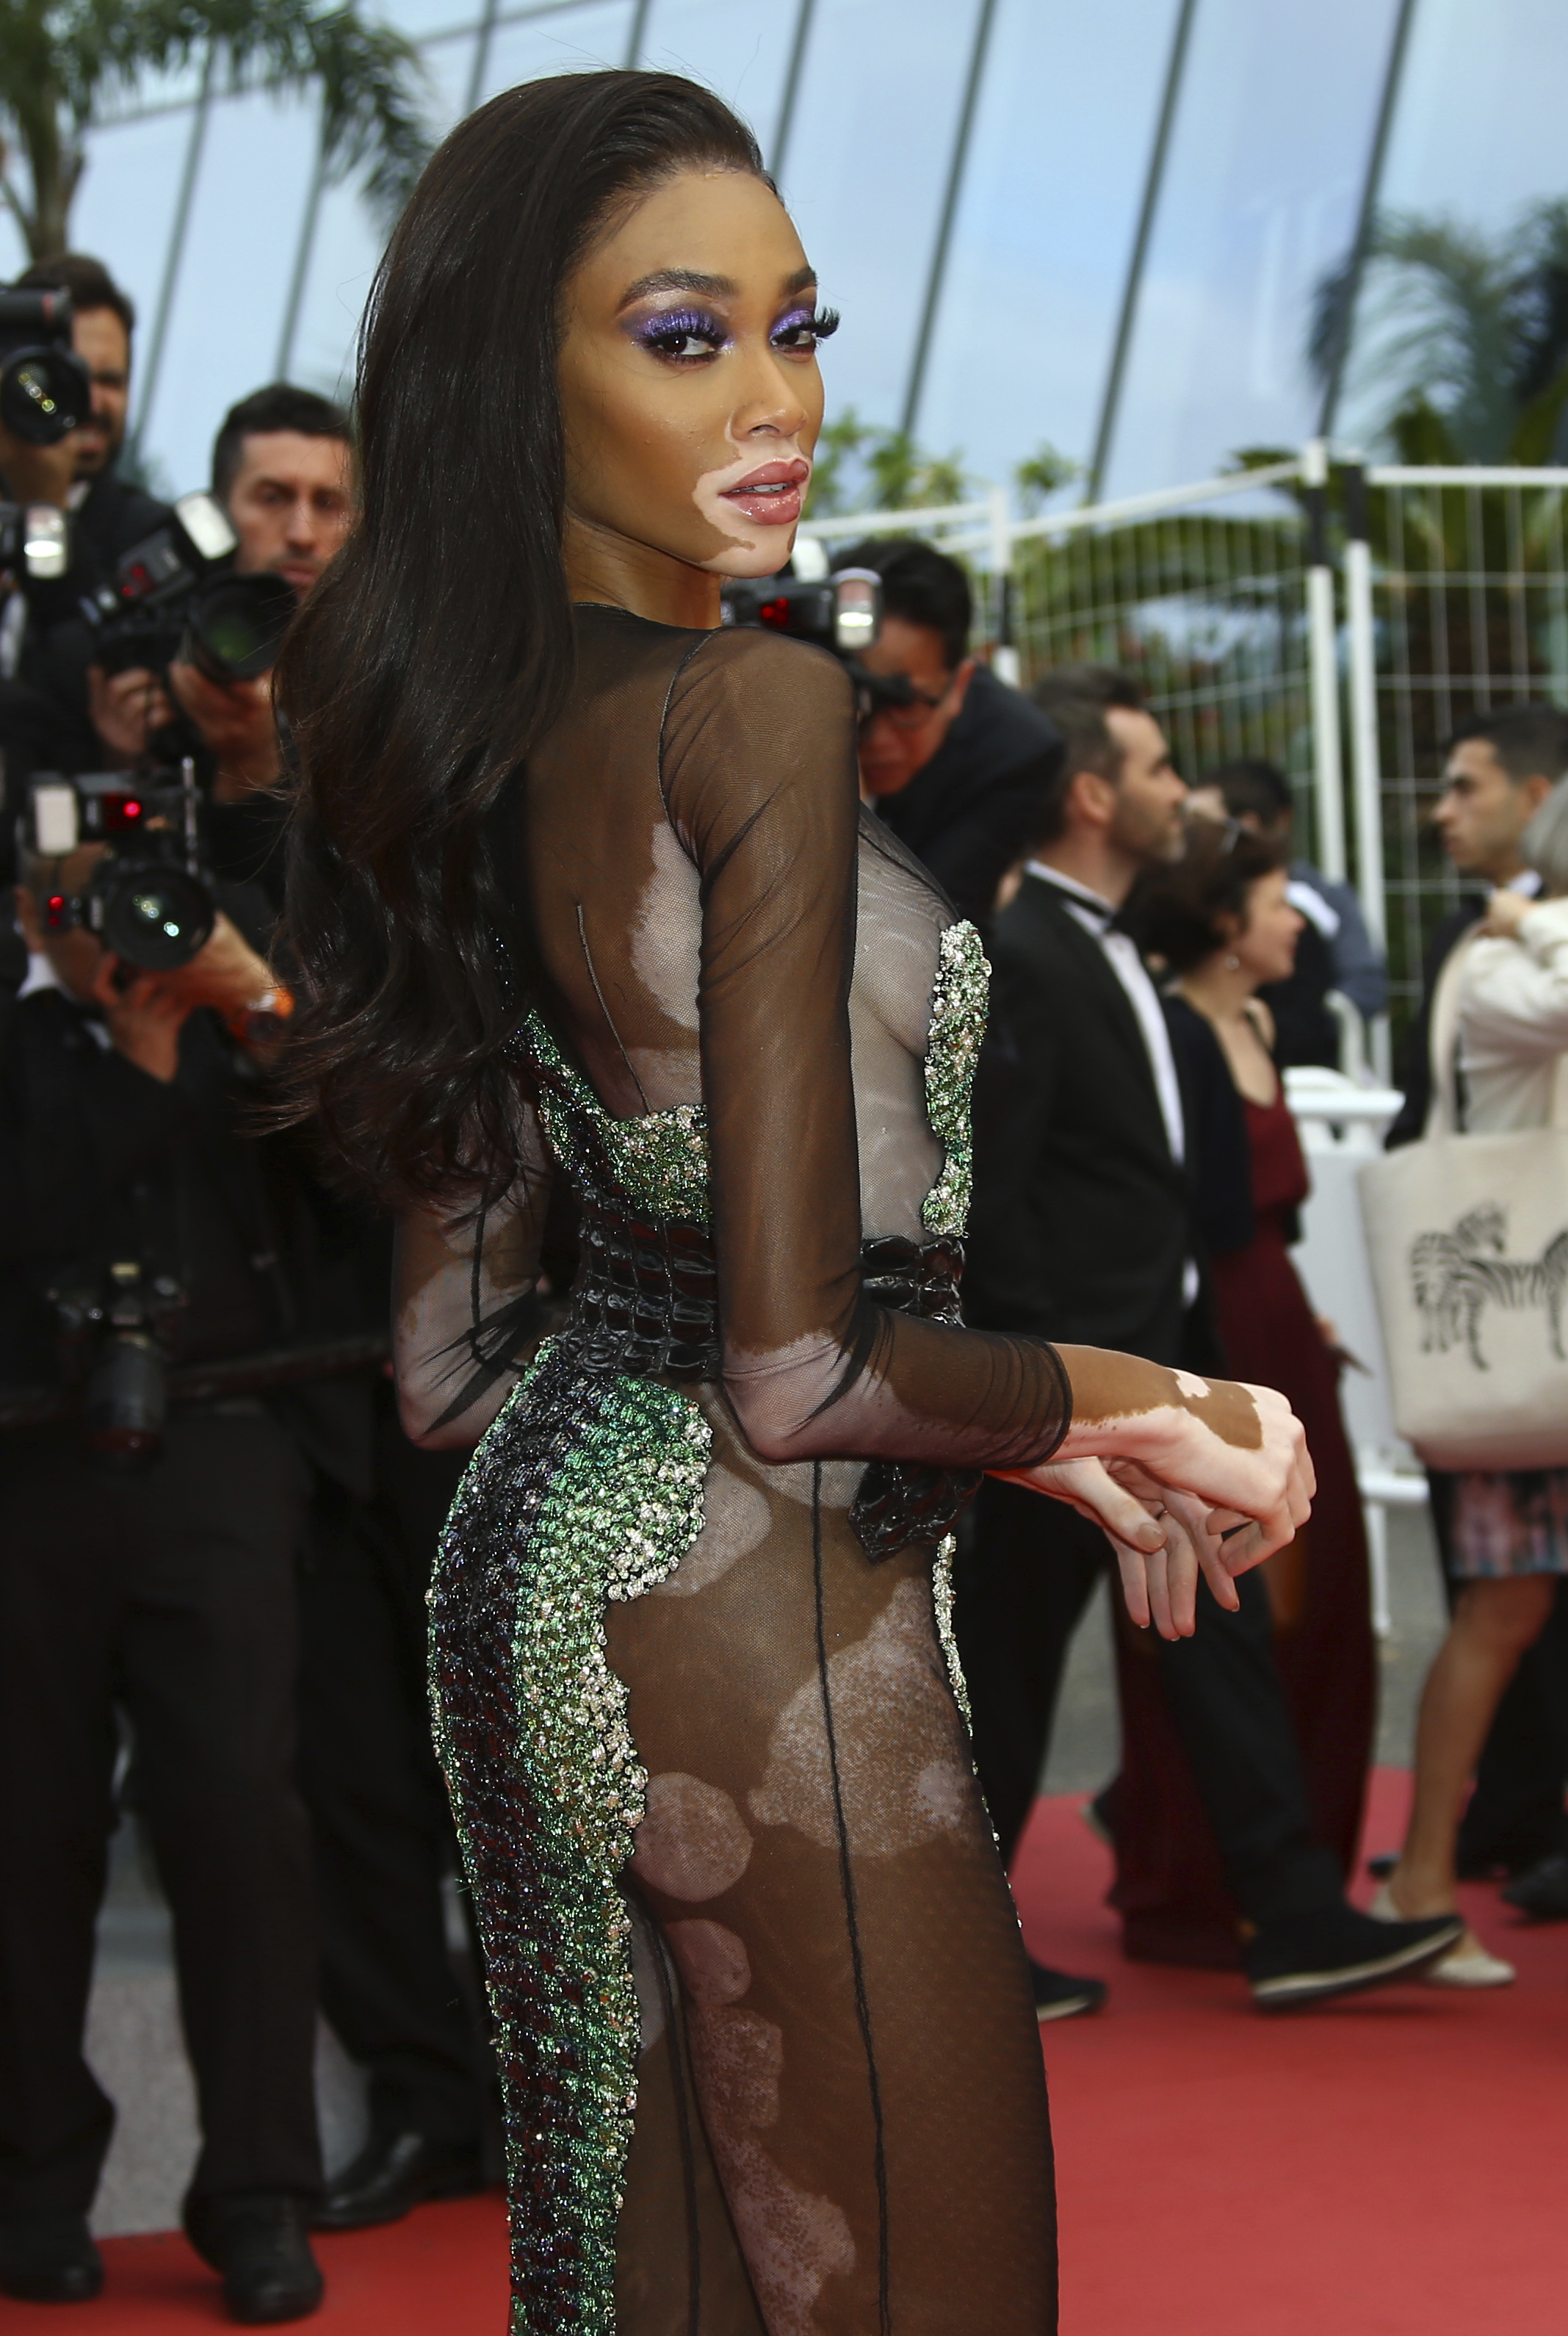 Model Winnie Harlow poses for photographers upon arrival at the premiere of the film 'Oh Mercy' at the 72nd international film festival, Cannes, southern France, Wednesday, May 22, 2019